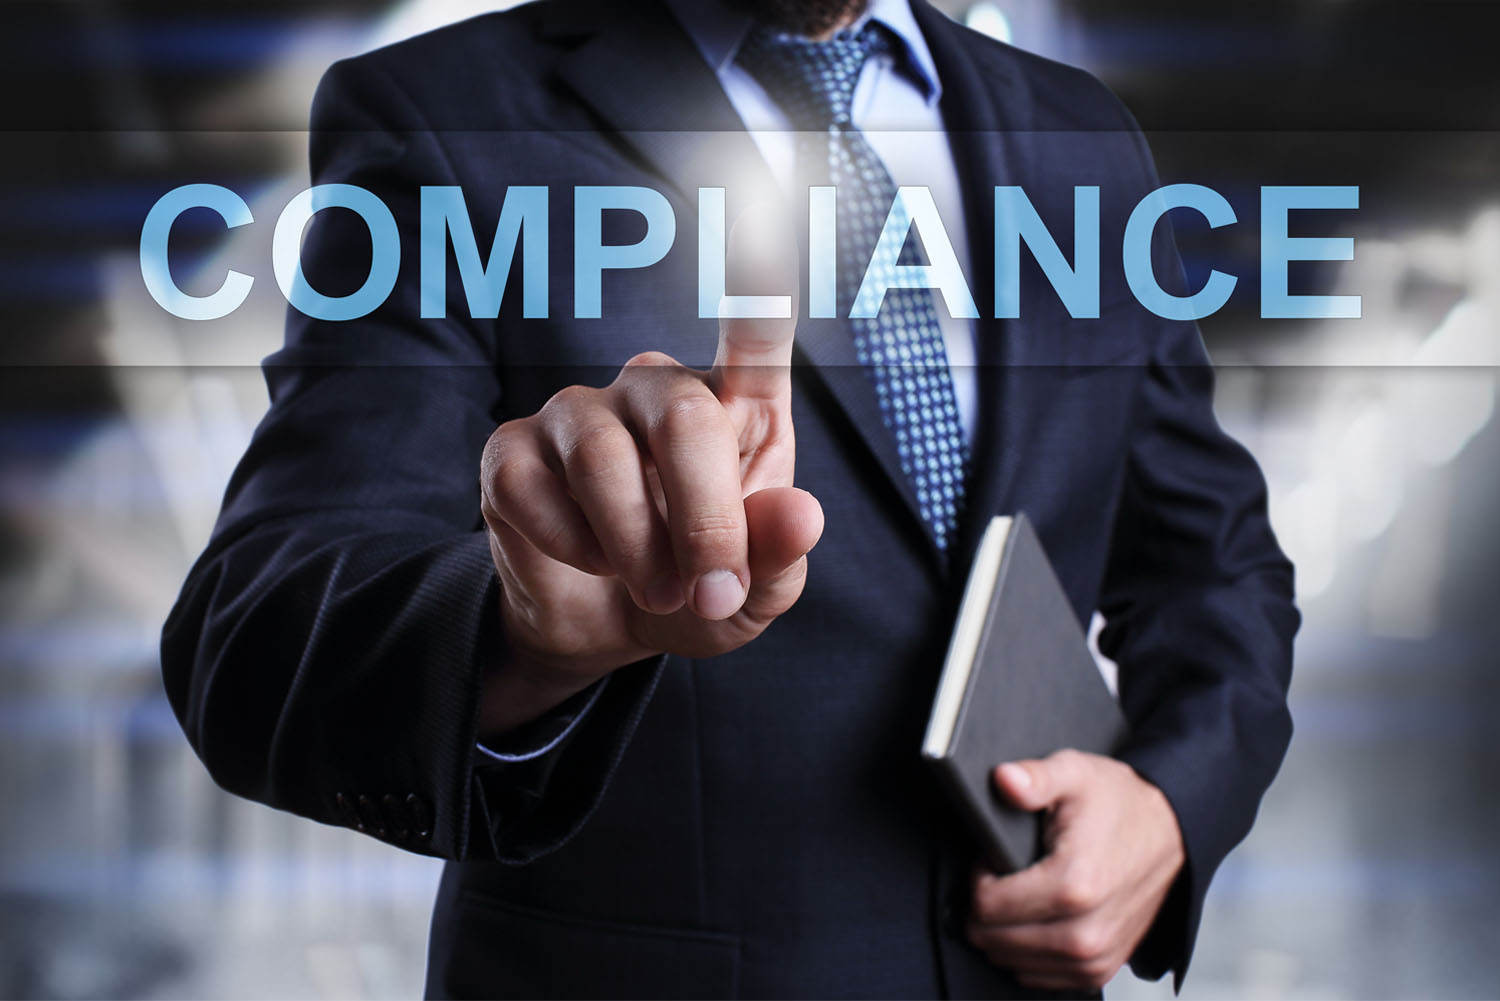 Compliance and related services